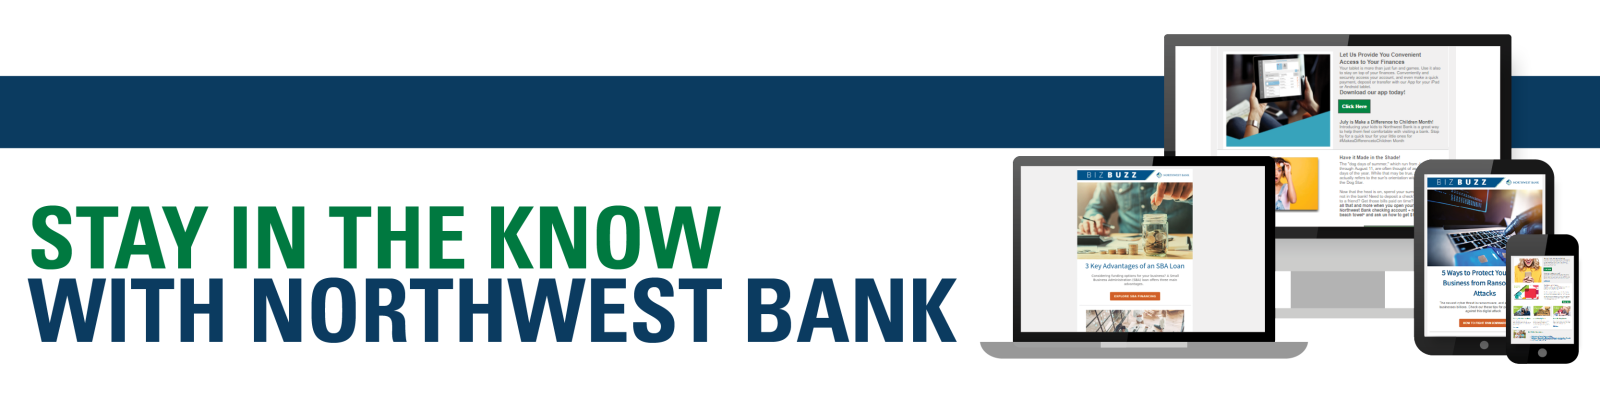 Stay in the Know with Northwest Bank